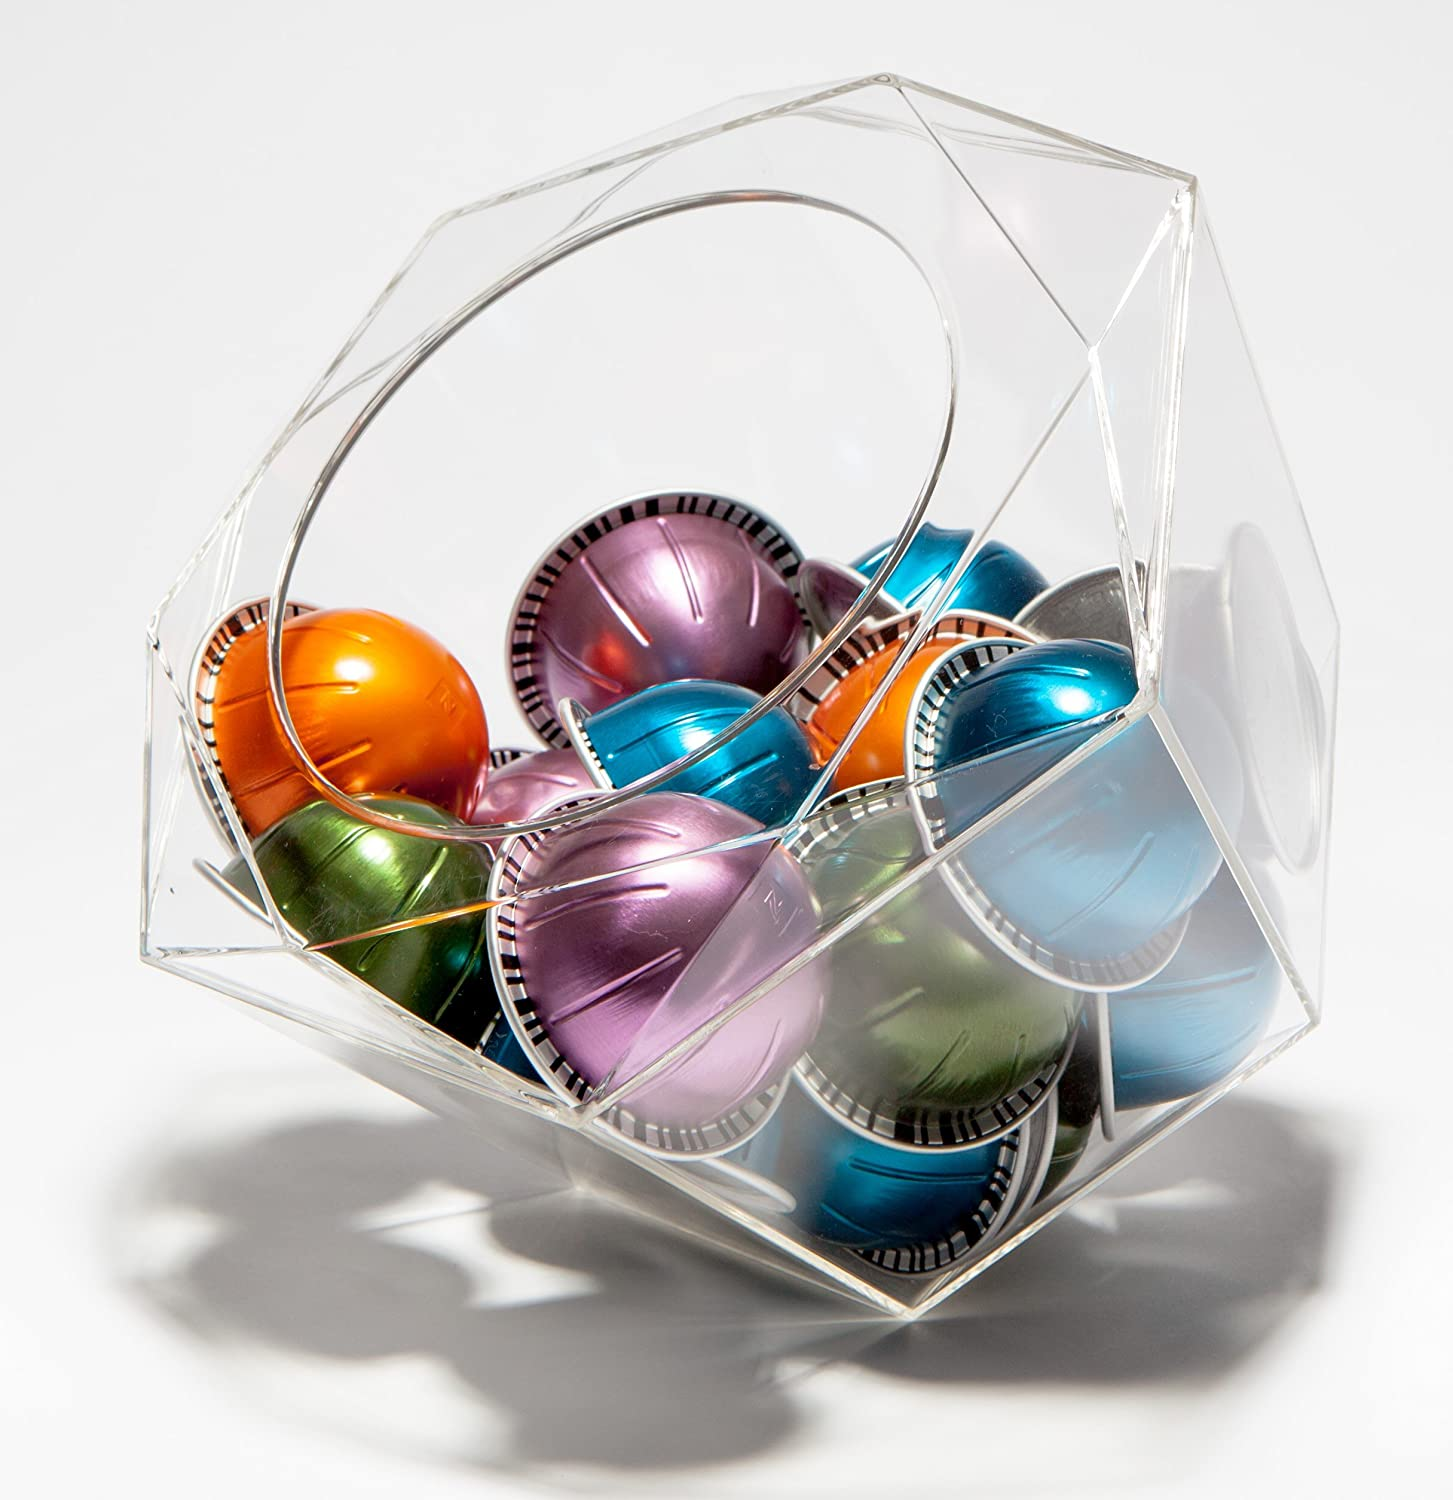 Verre Collection Hexagon Plexiglass Capsule Pod Holder, Compatible for Nespresso Vertuoline, K-Cups, Dolce Gusto, Clear Dispenser, Storage Solution